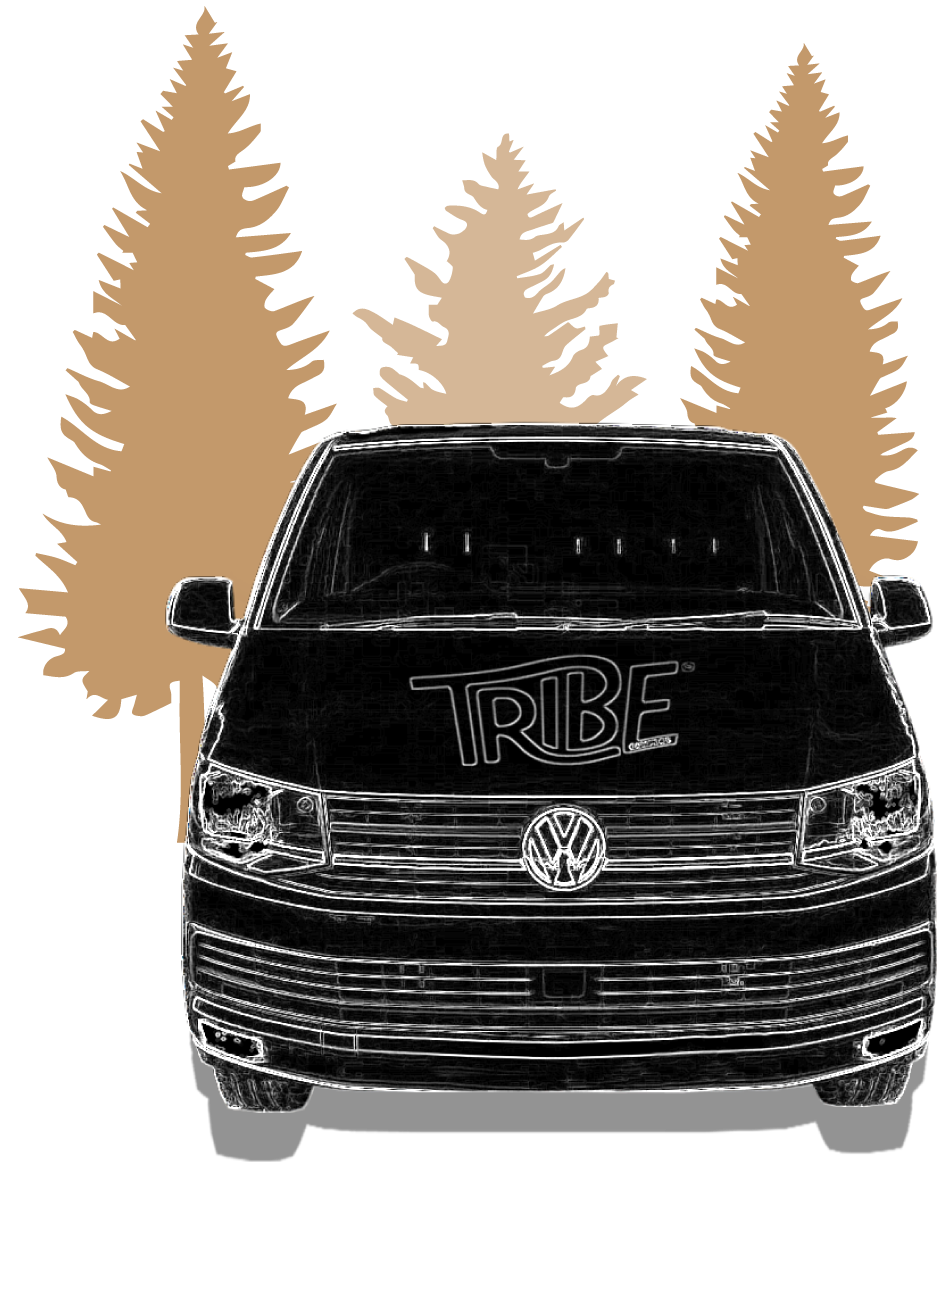 A graphical image of a T6 VW Camper, with the Tribe Campers logo on the bonnet.